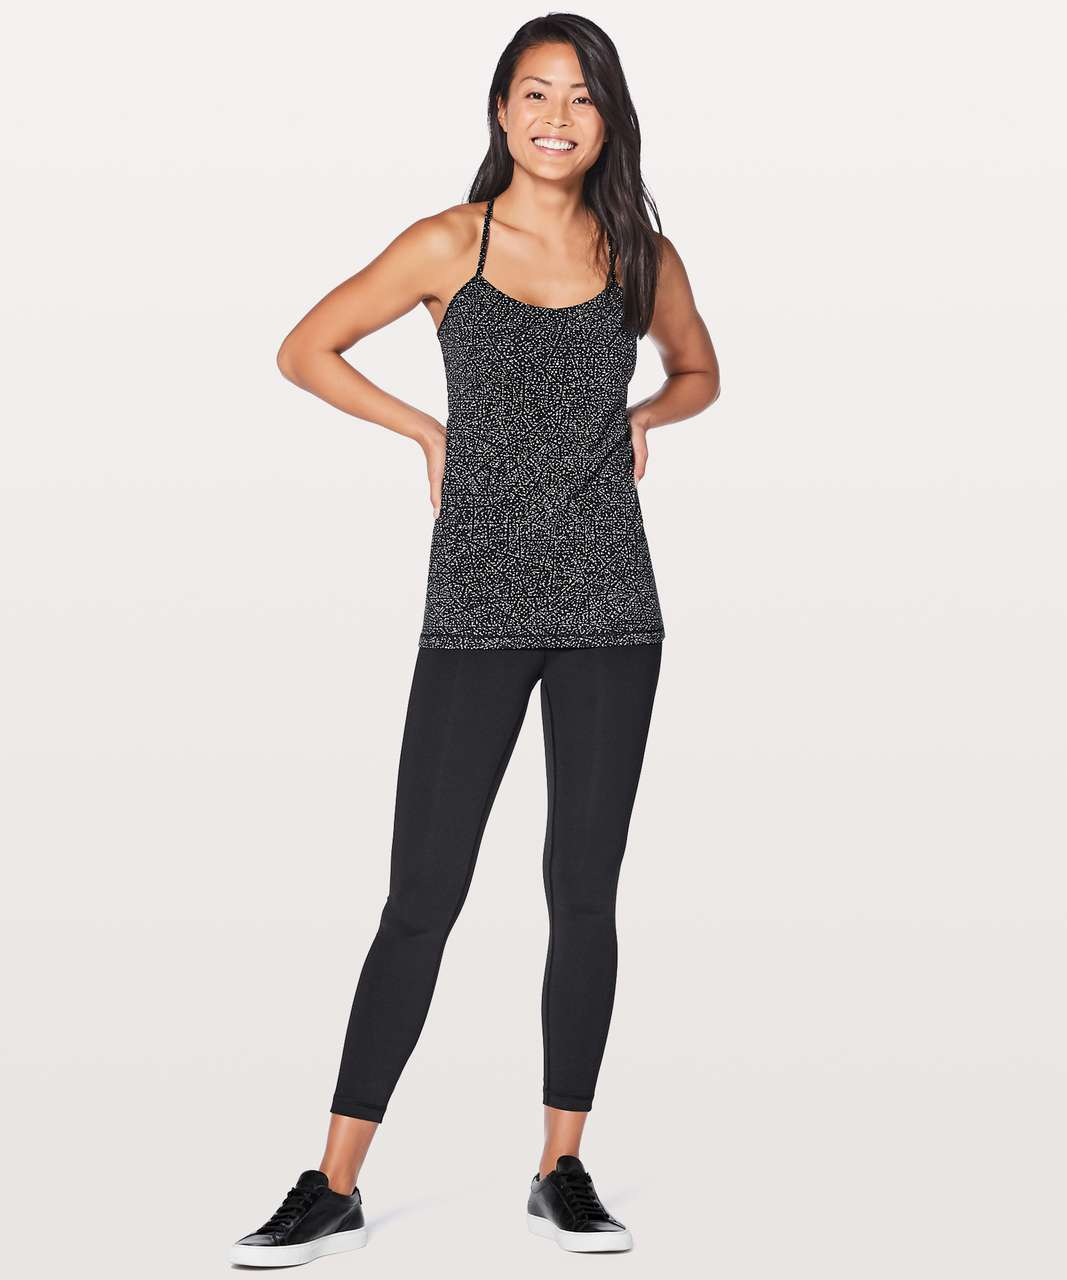 Lululemon Power Pose Tank *Light Support For A/B Cup - Night View White Black